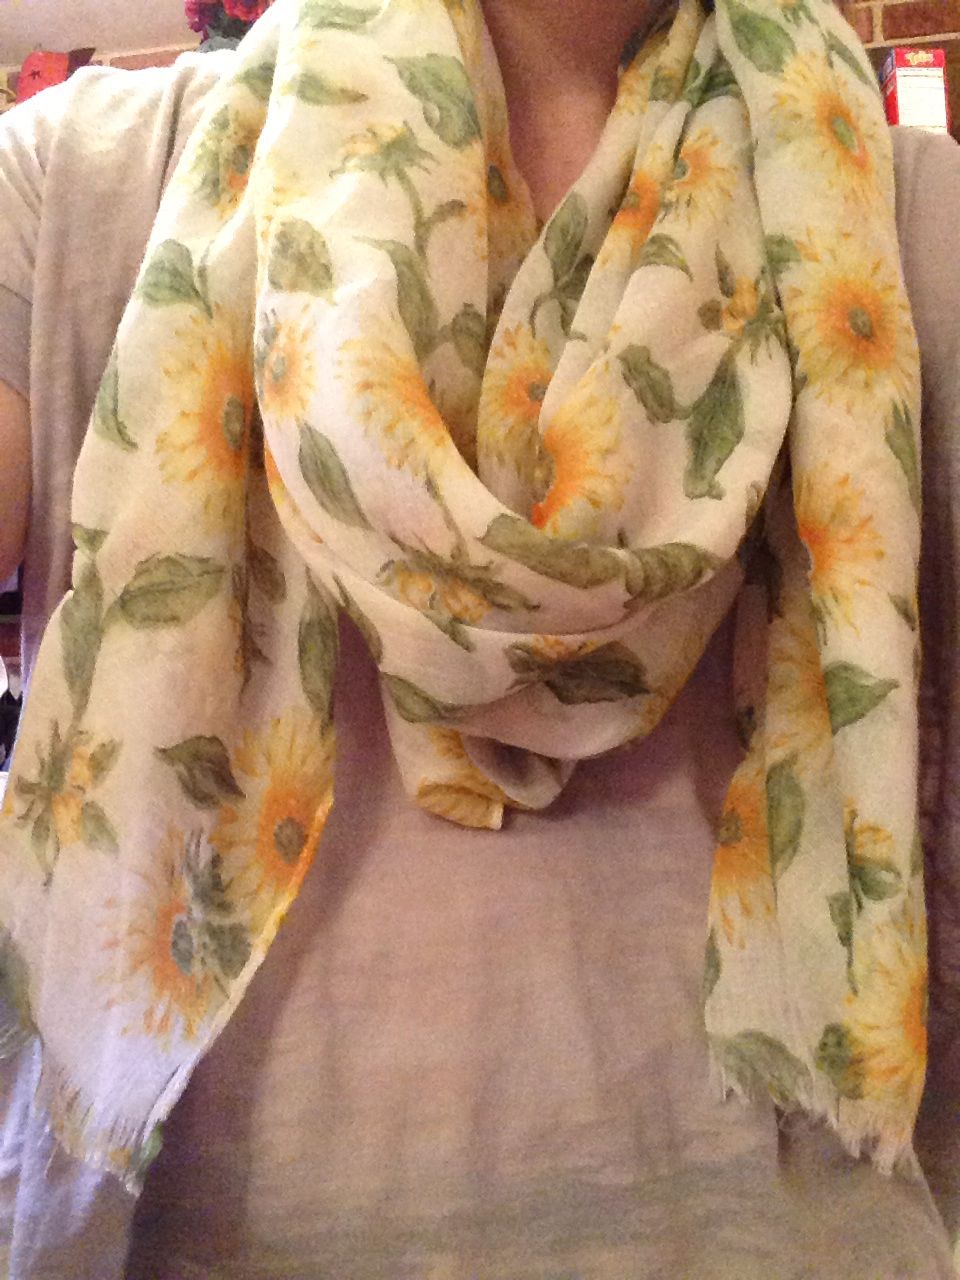 Sunflower scarf!❤️ I'm ready for spring!